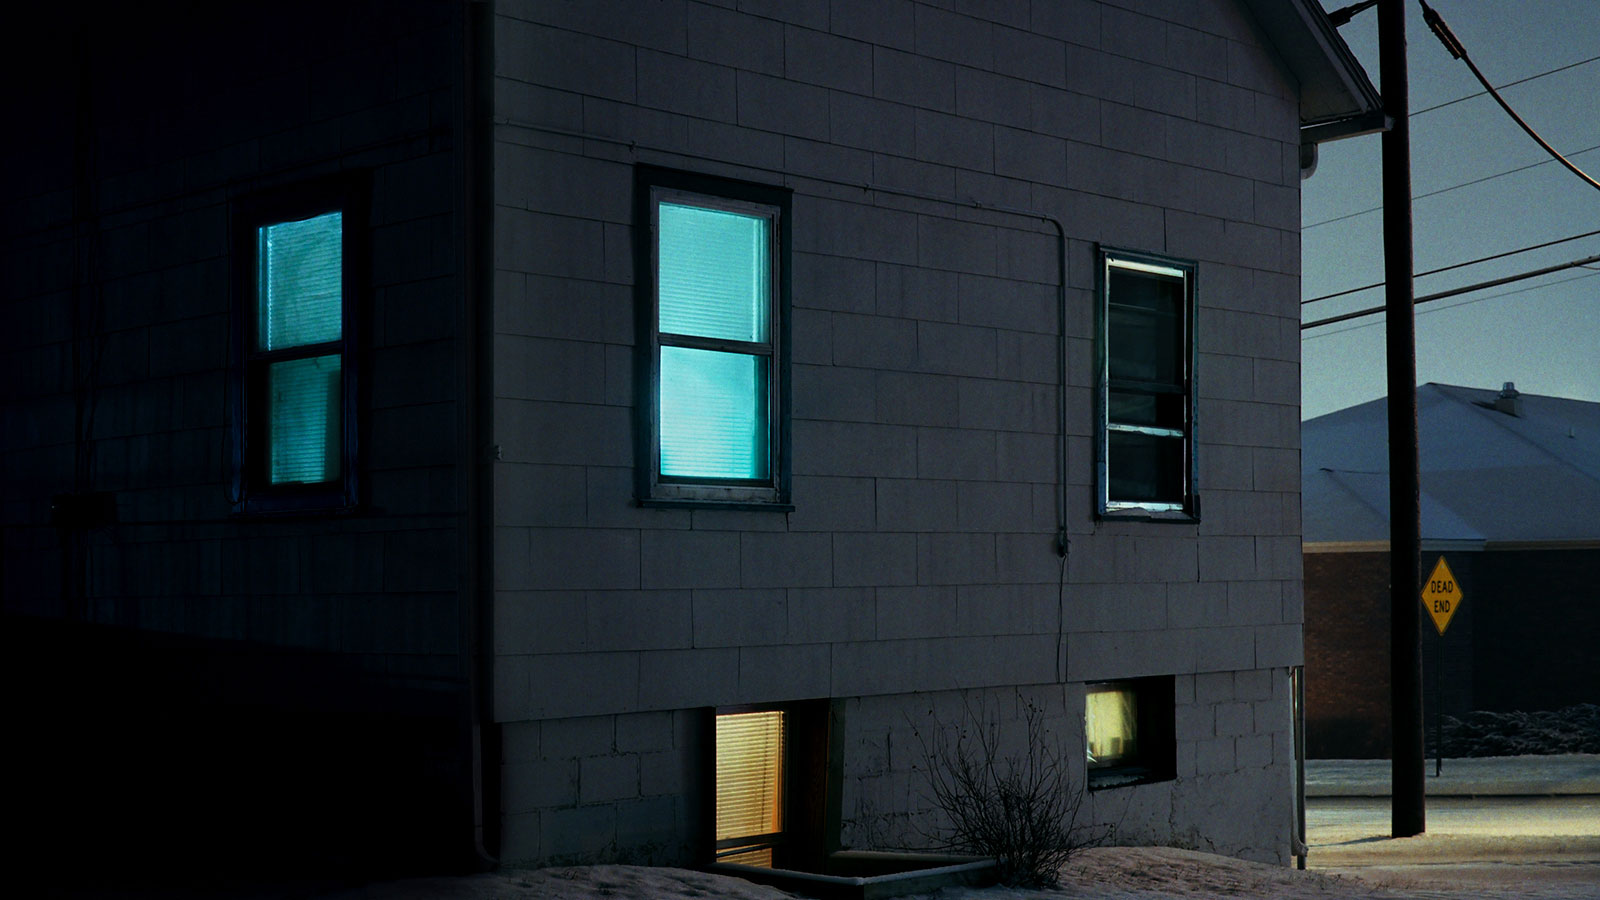 House at Night, 2007 (detail) © Christian Patterson